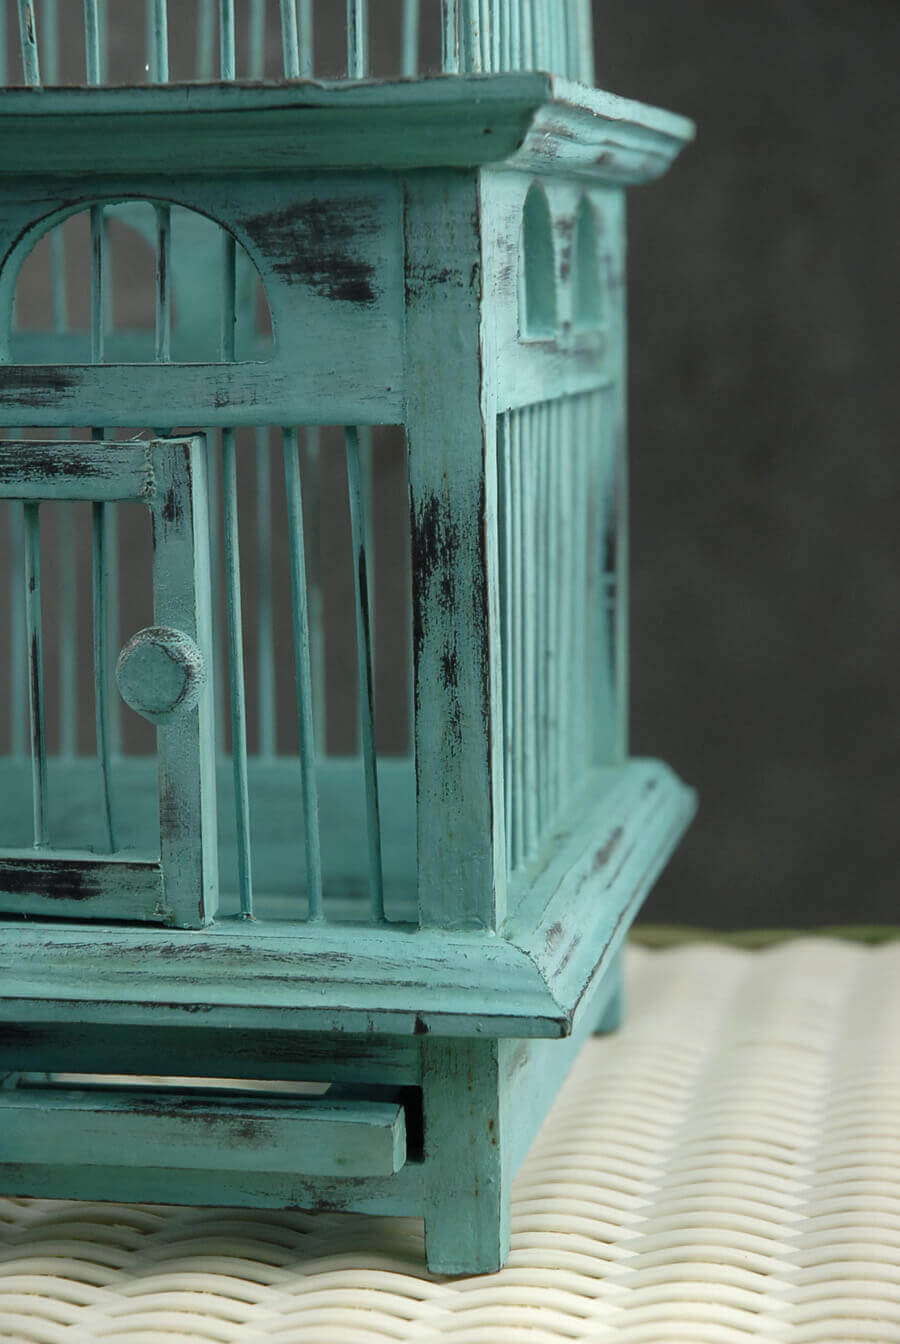 Tiffany Blue Handcrafted Teak Bird Cages (16-1/2